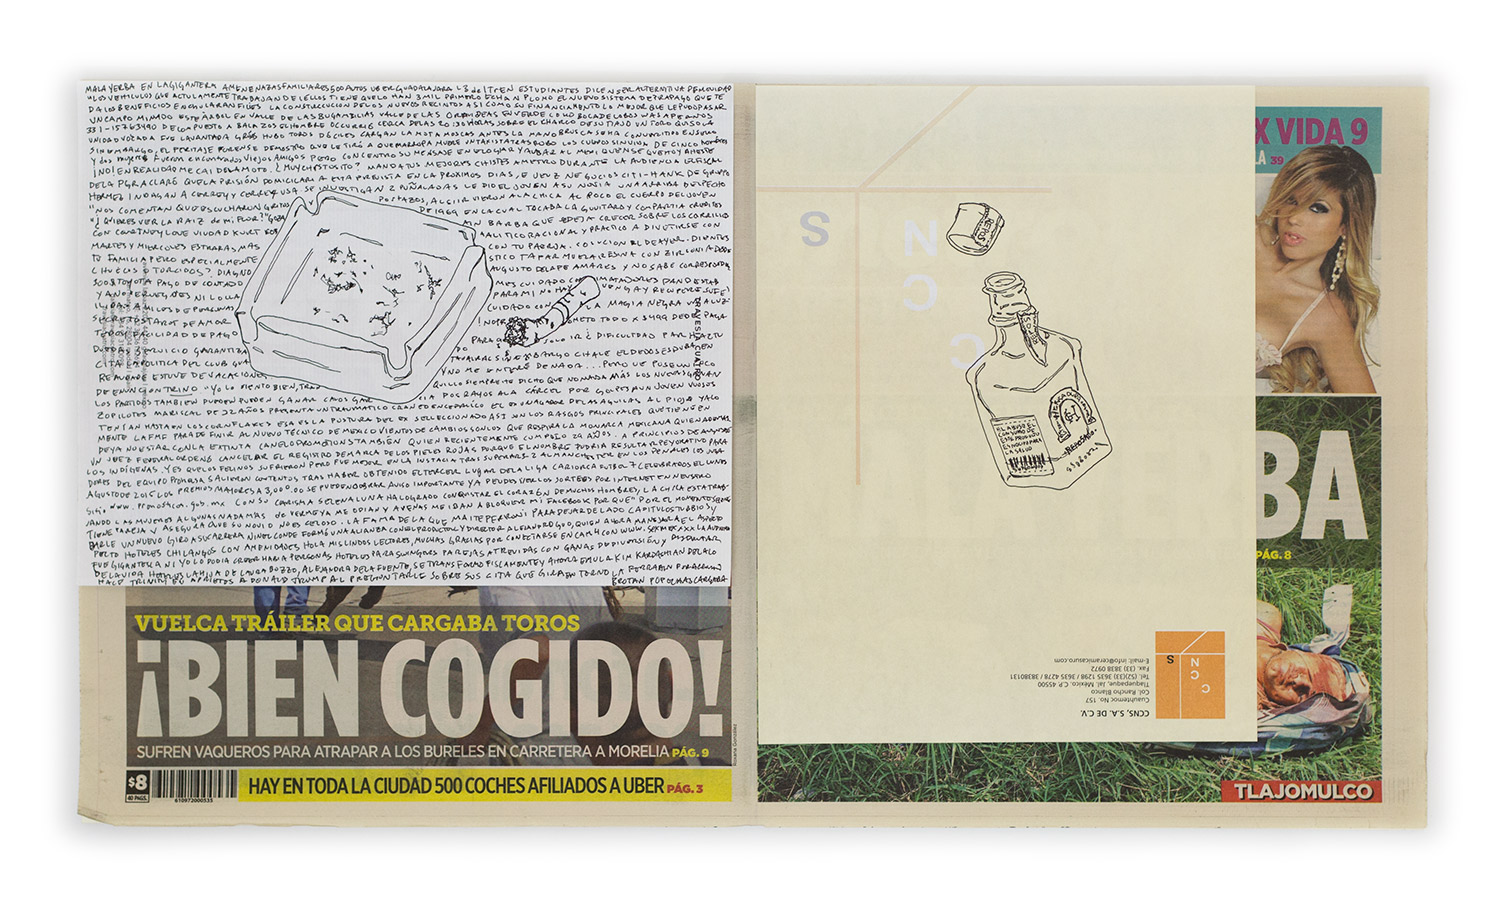 Political Drawing (Metro: Guadalajara, Mexico, Martes 18 Agosto 2015)    2015   Ink on paper, daily newspaper  12 1/2 x 22 3/4 inches   Drawings, 2014–